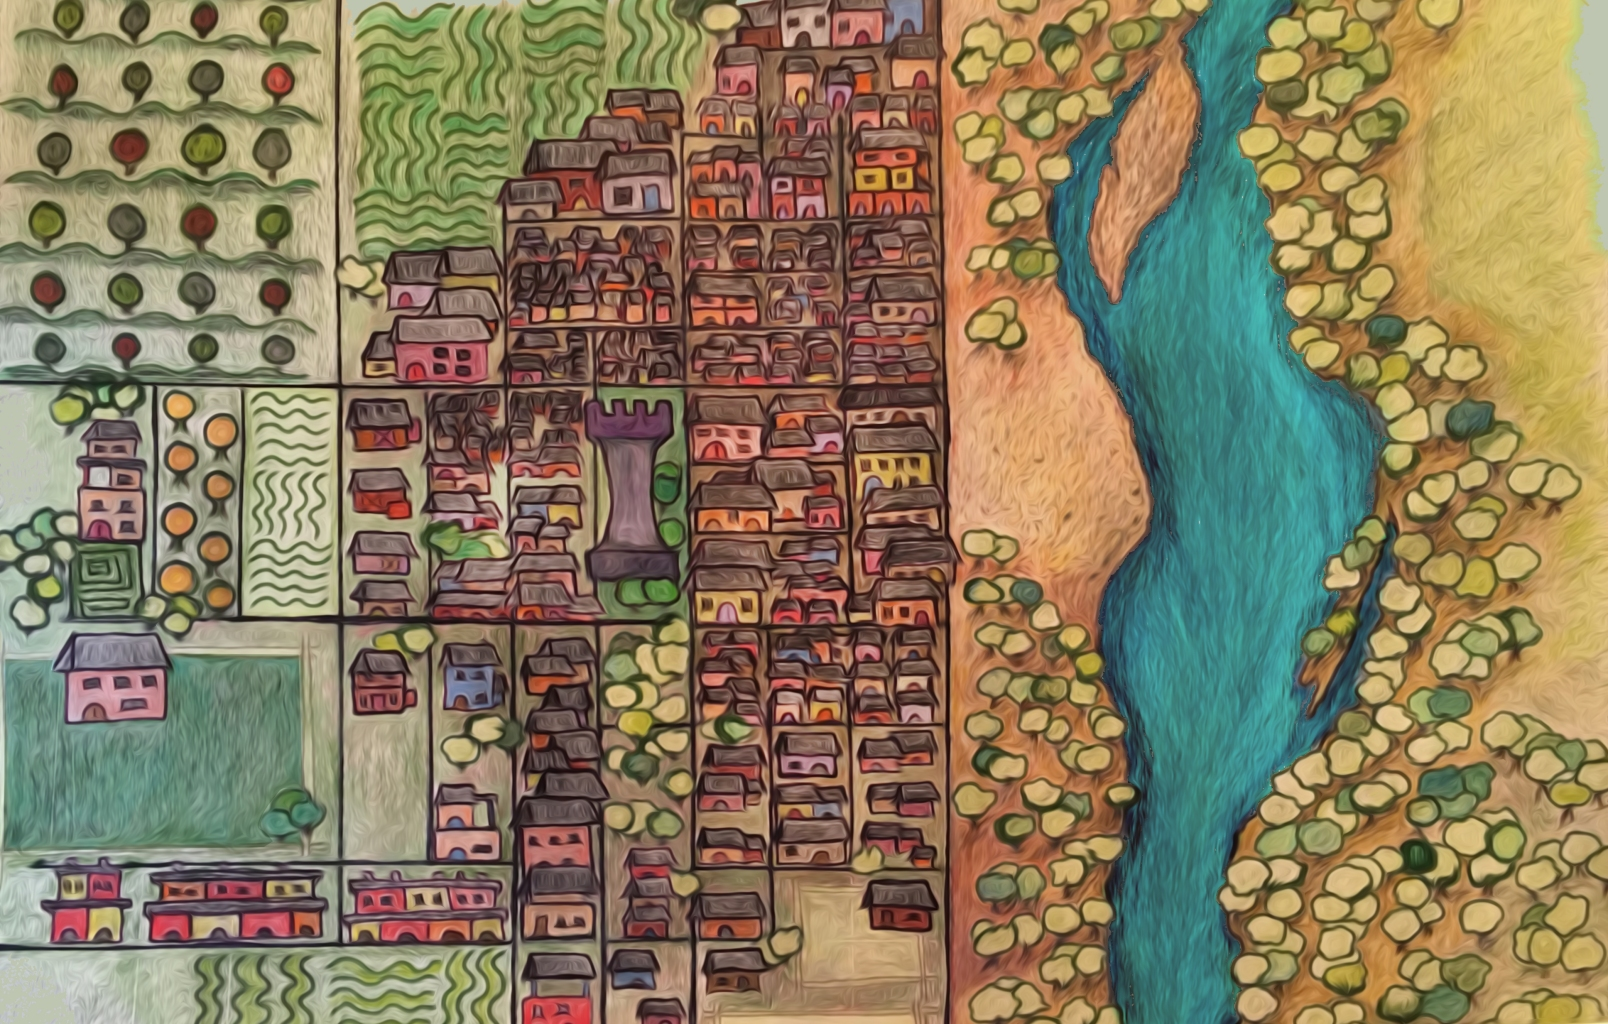 city of Manifort's Freedom hand-drawn map